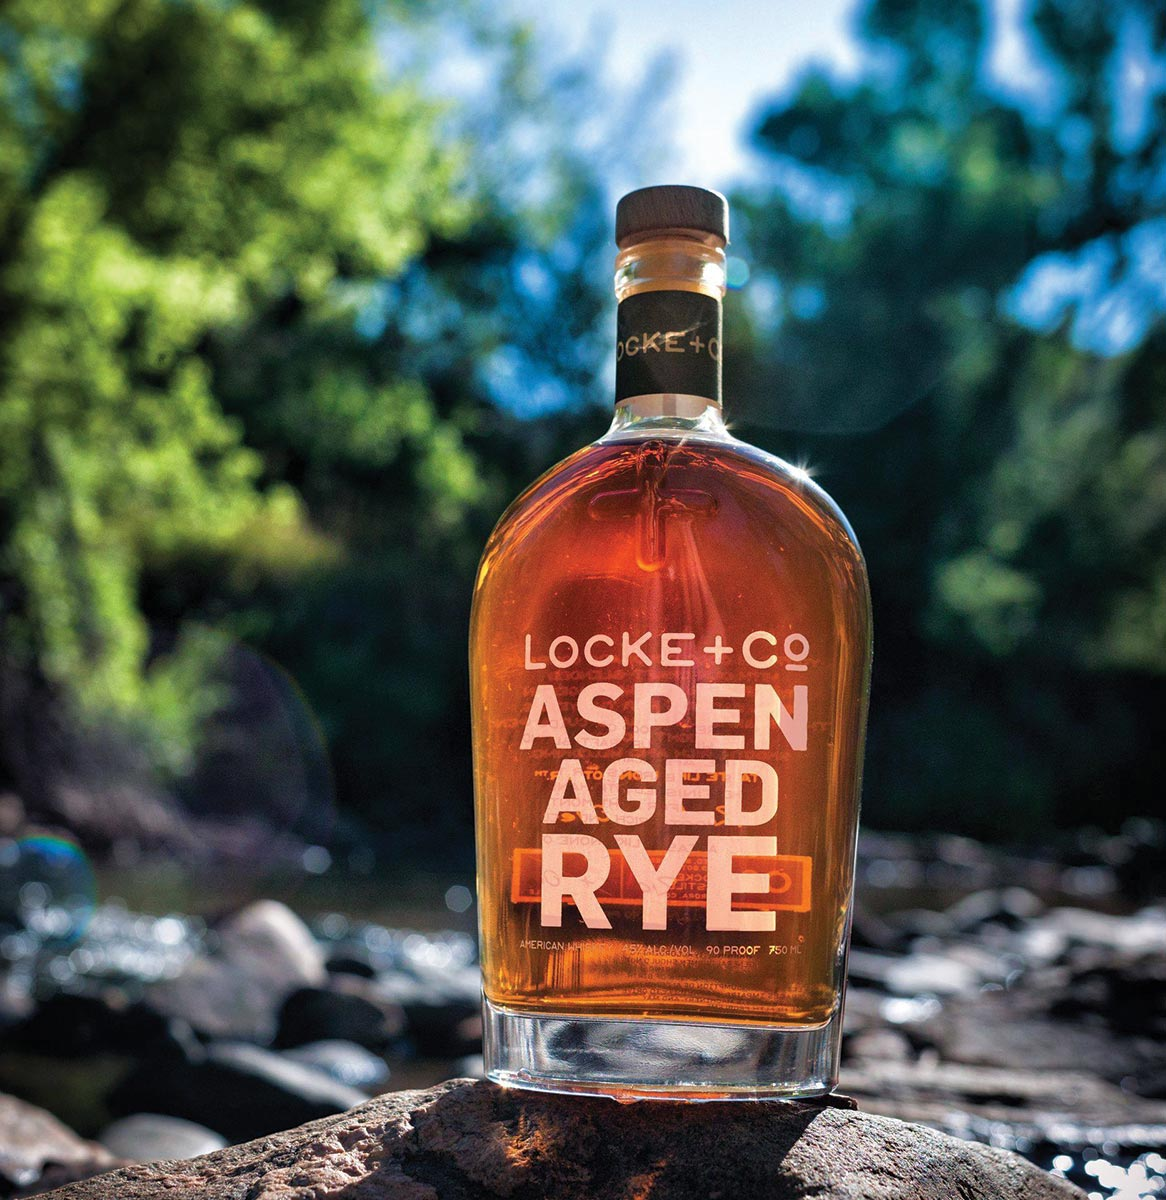 Colorado Aspen Aged Rye Whiskey Comes to Connecticut